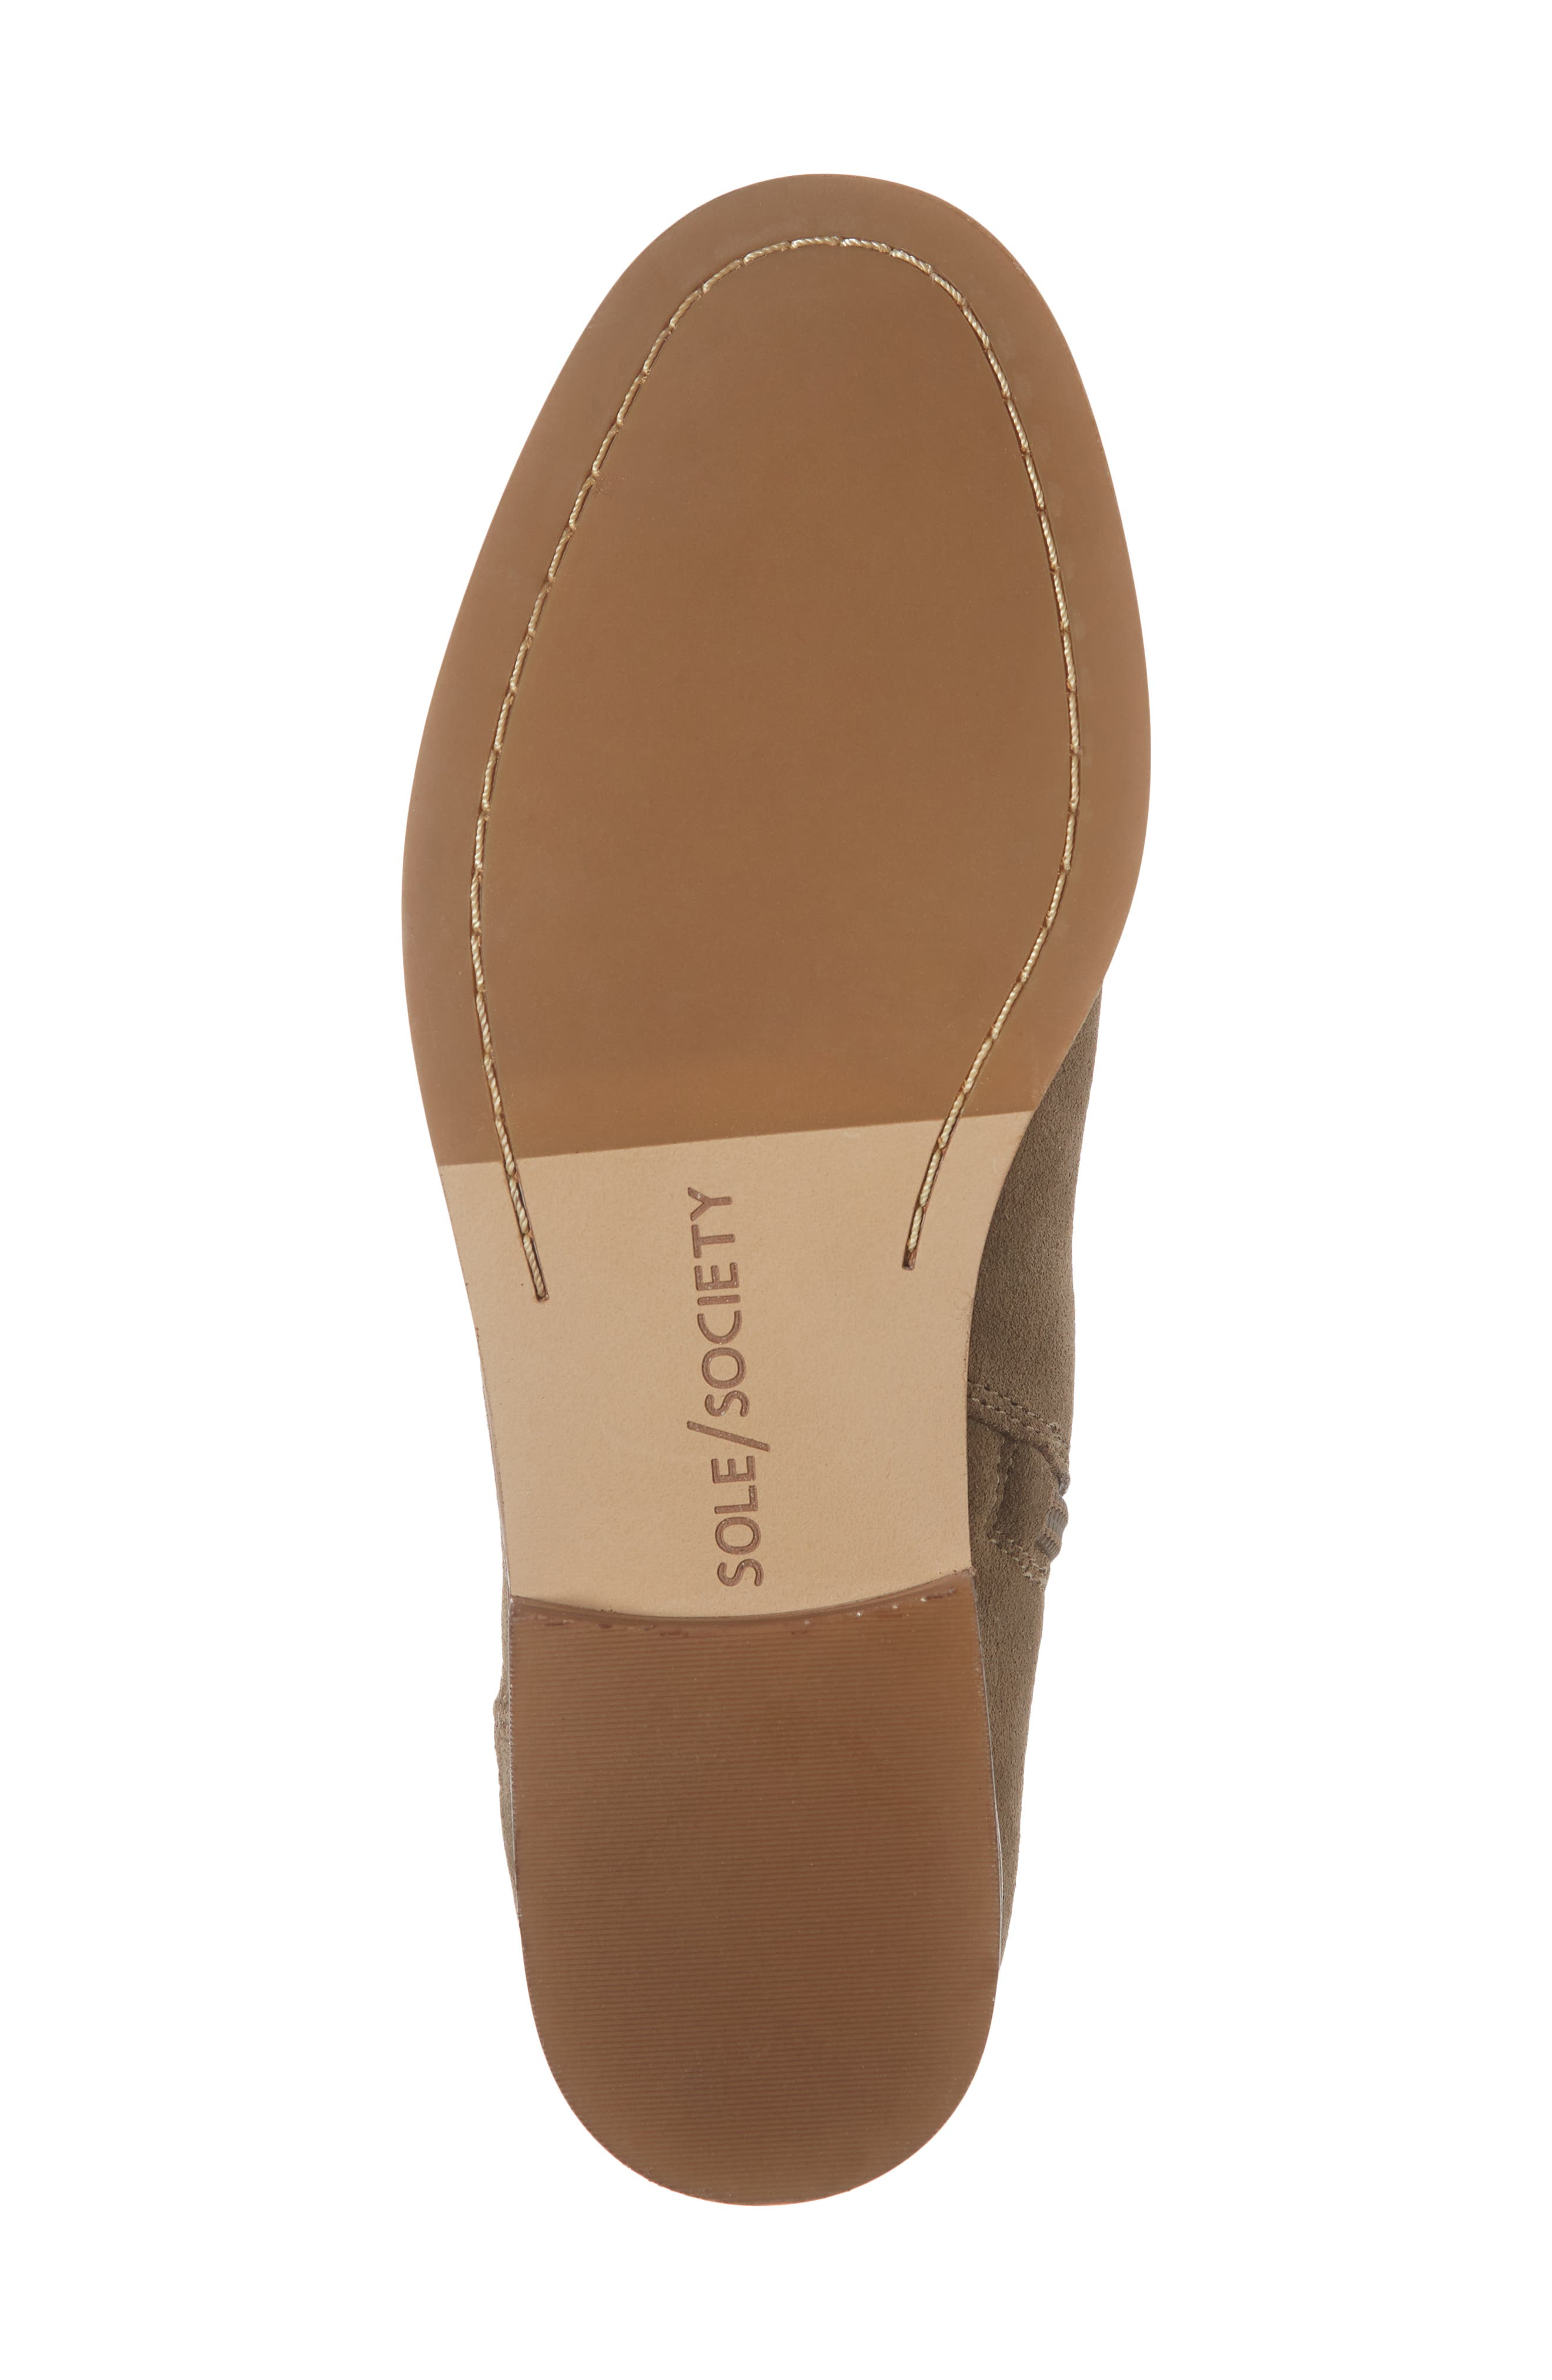 Bevlyn Bootie,                             Alternate thumbnail 6, color,                             ROCK SUEDE